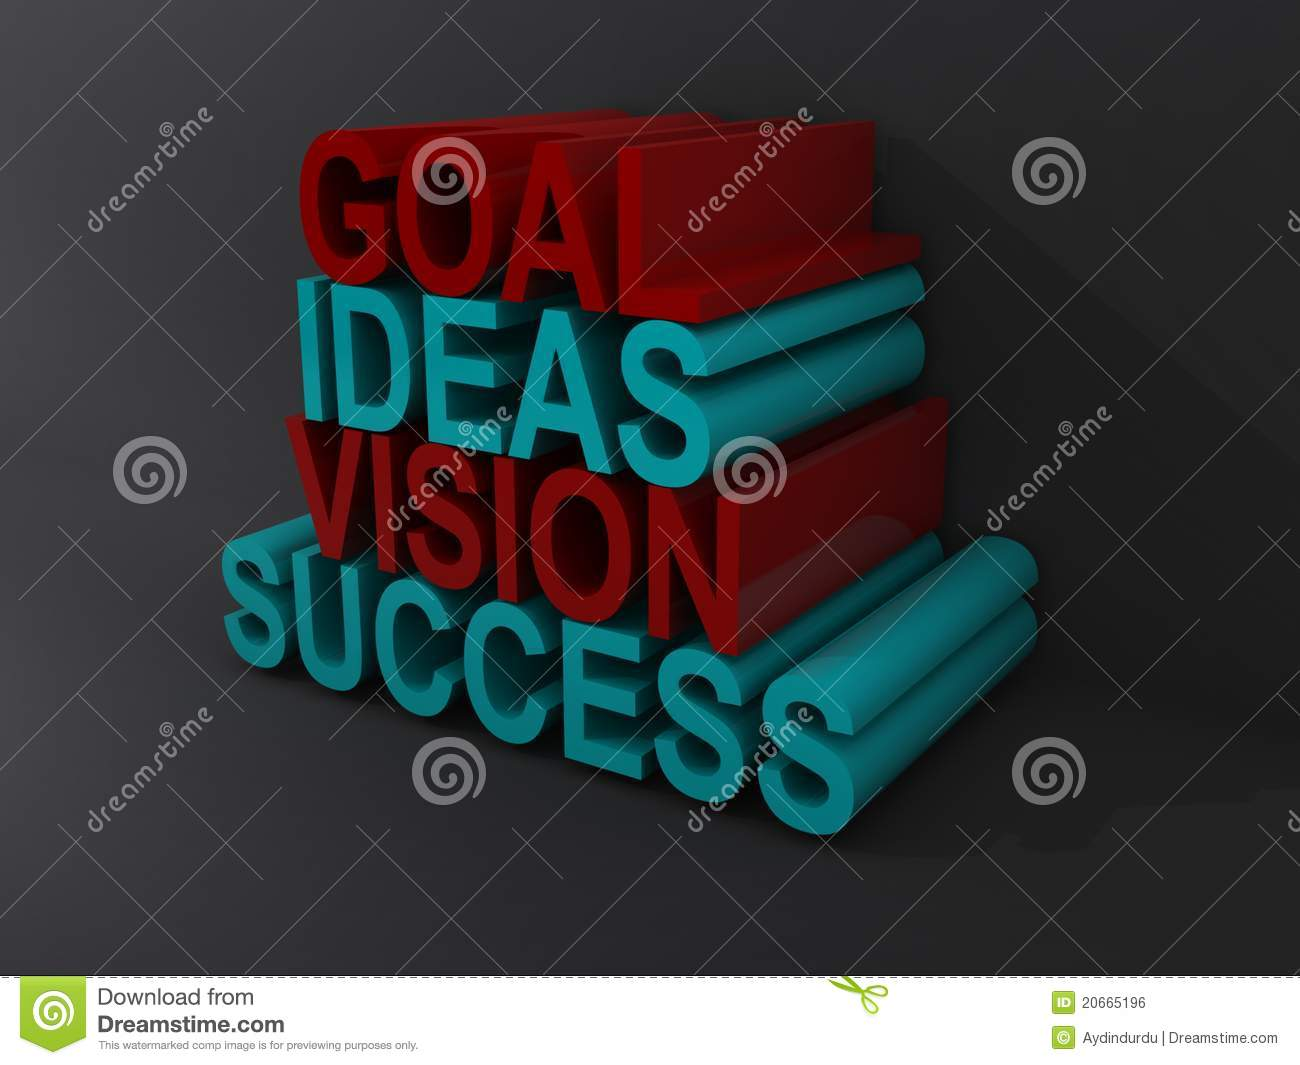 Goal Ideas Vision Success Royalty Free Stock Image - Image ...